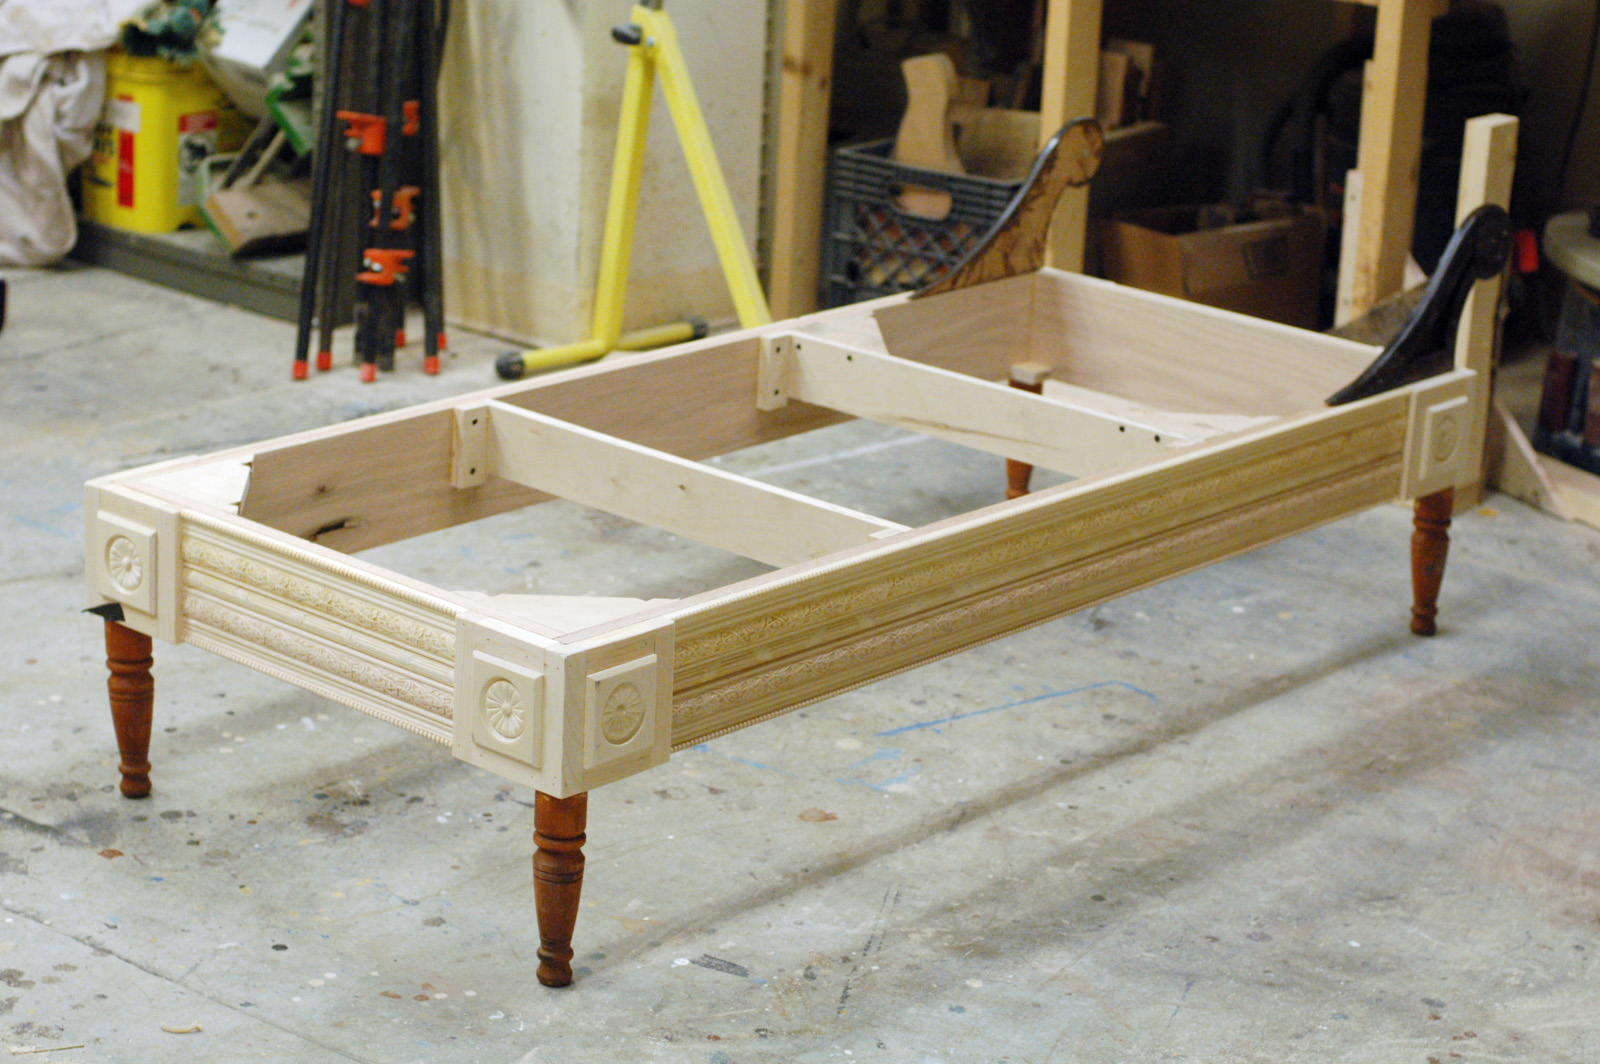 A step by step photographic woodworking guide page 22 for Building a chaise lounge